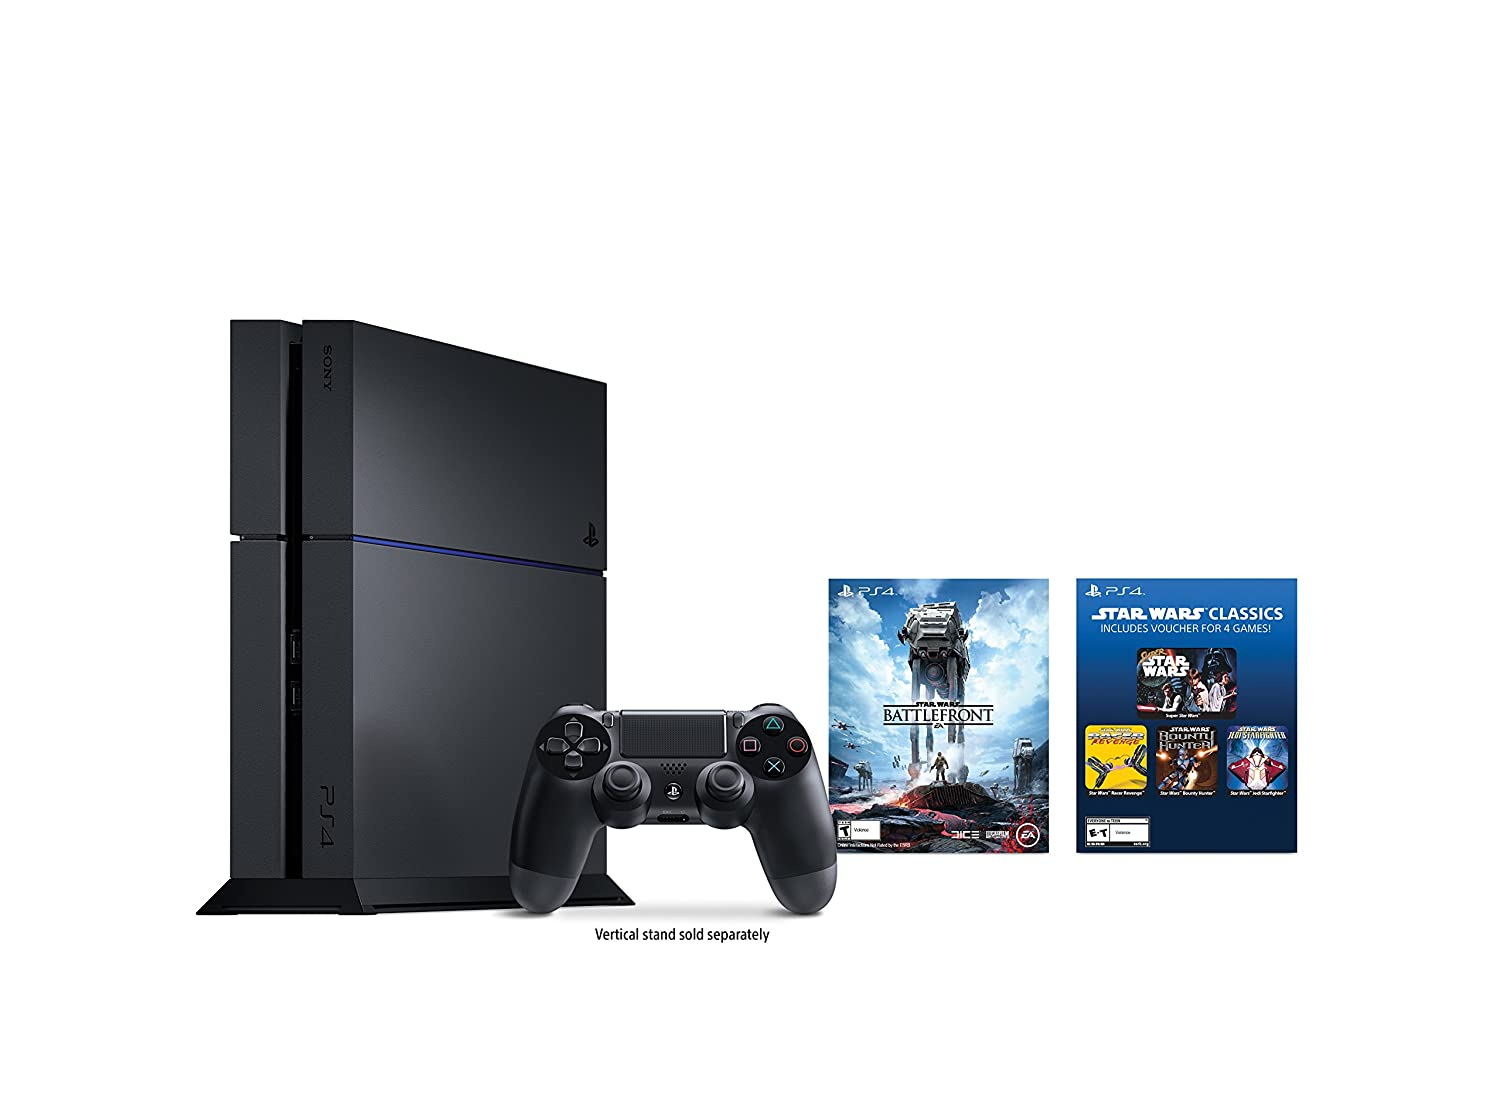 sony ps4 console. amazon.com: playstation 4 500gb console - star wars battlefront bundle: video games sony ps4